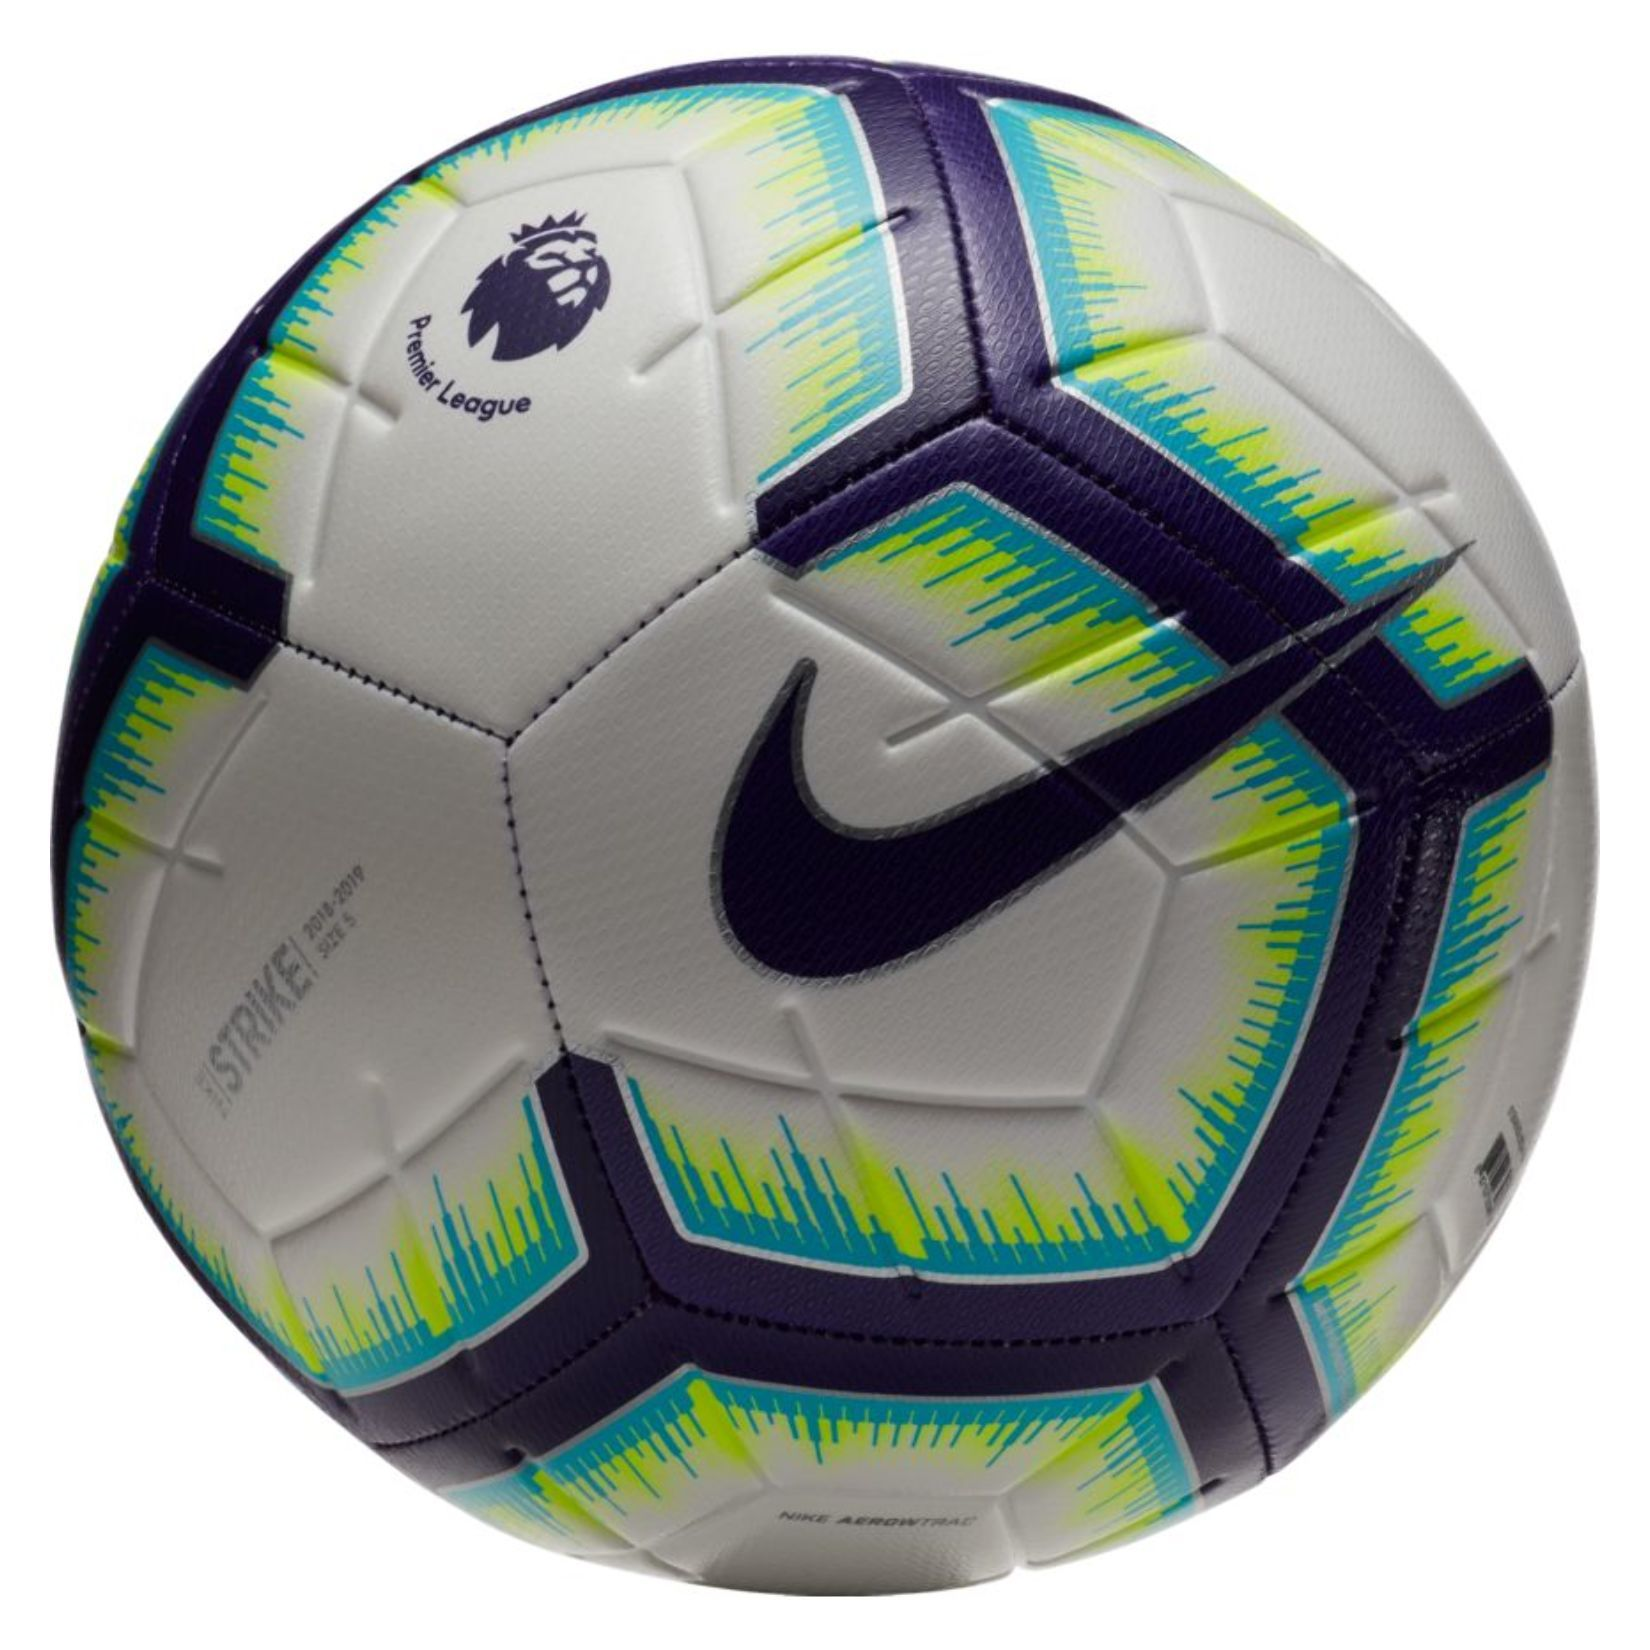 The Premier League Strike Football Is Ready For Everyday Play With Its 12 Panel Design And Visual Power Graphic For B Nike Soccer Ball Soccer Ball Soccer Balls